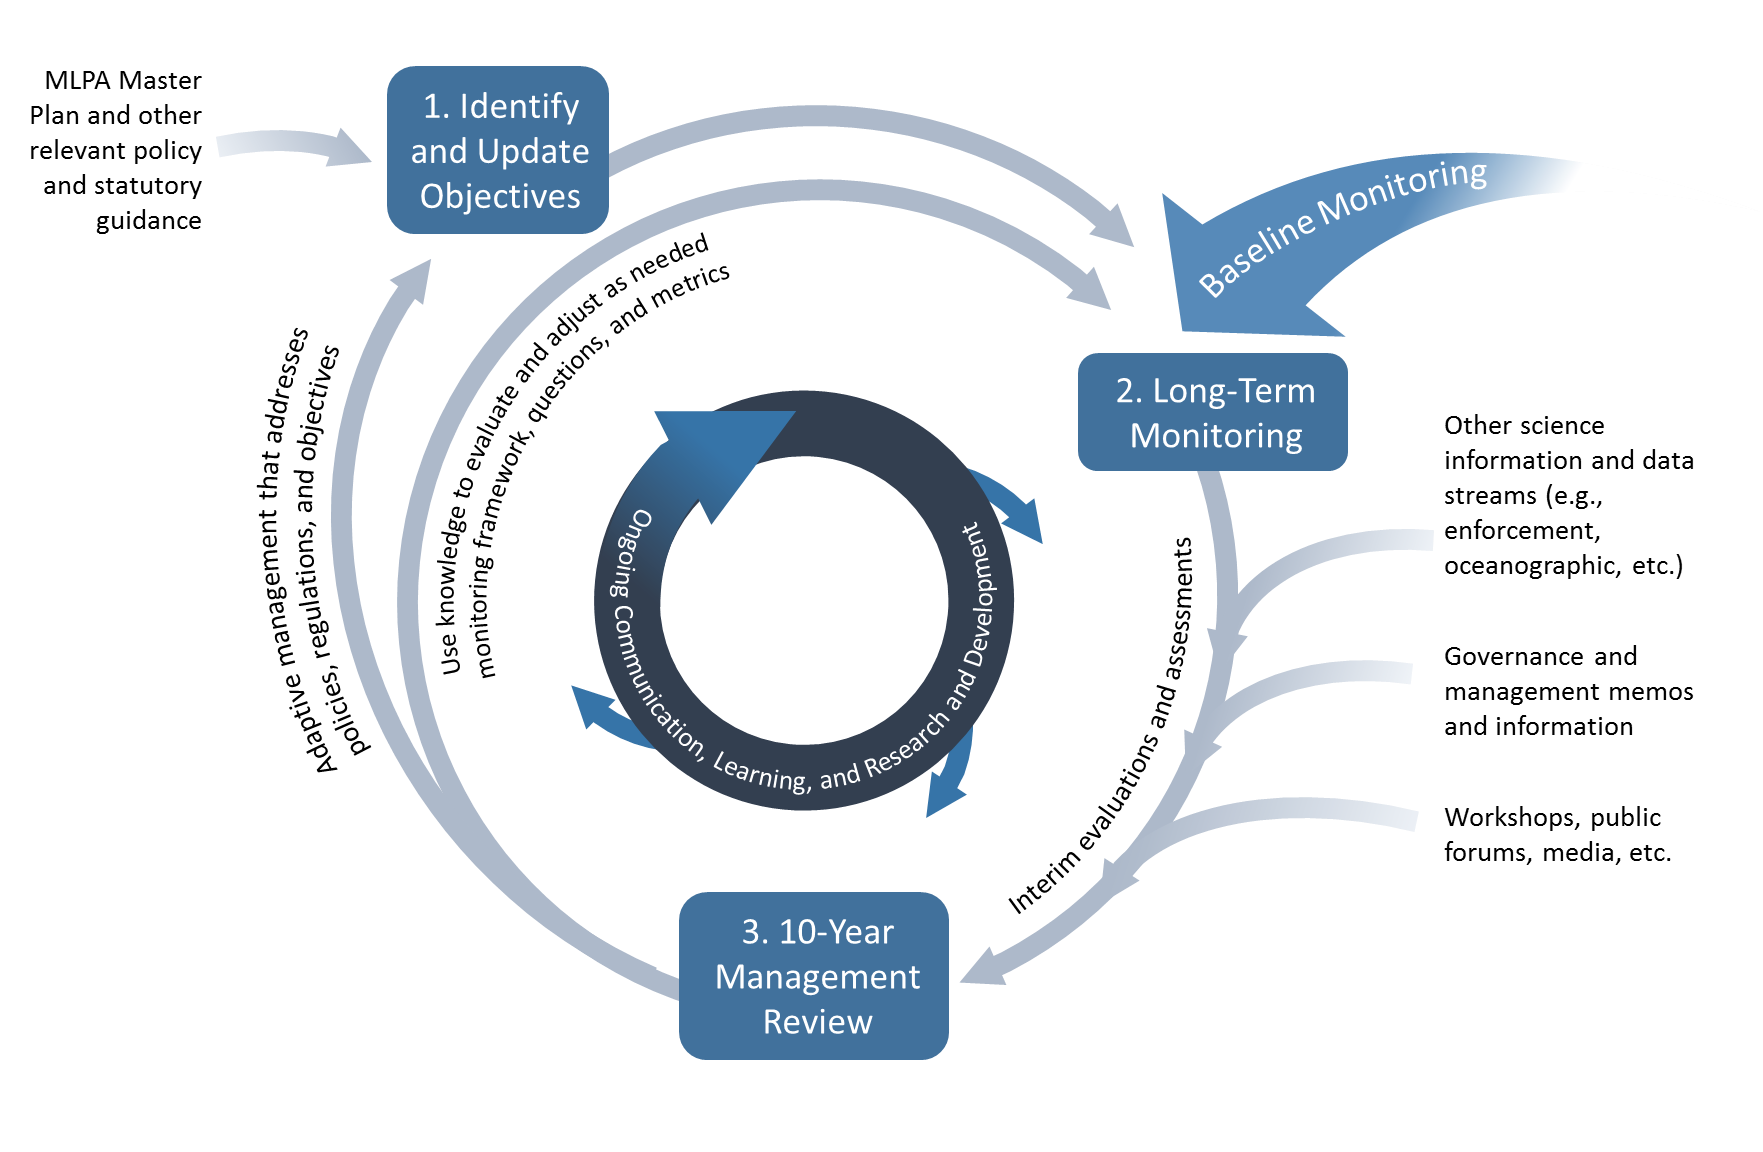 circular flow diagram depicting the MPA Management process